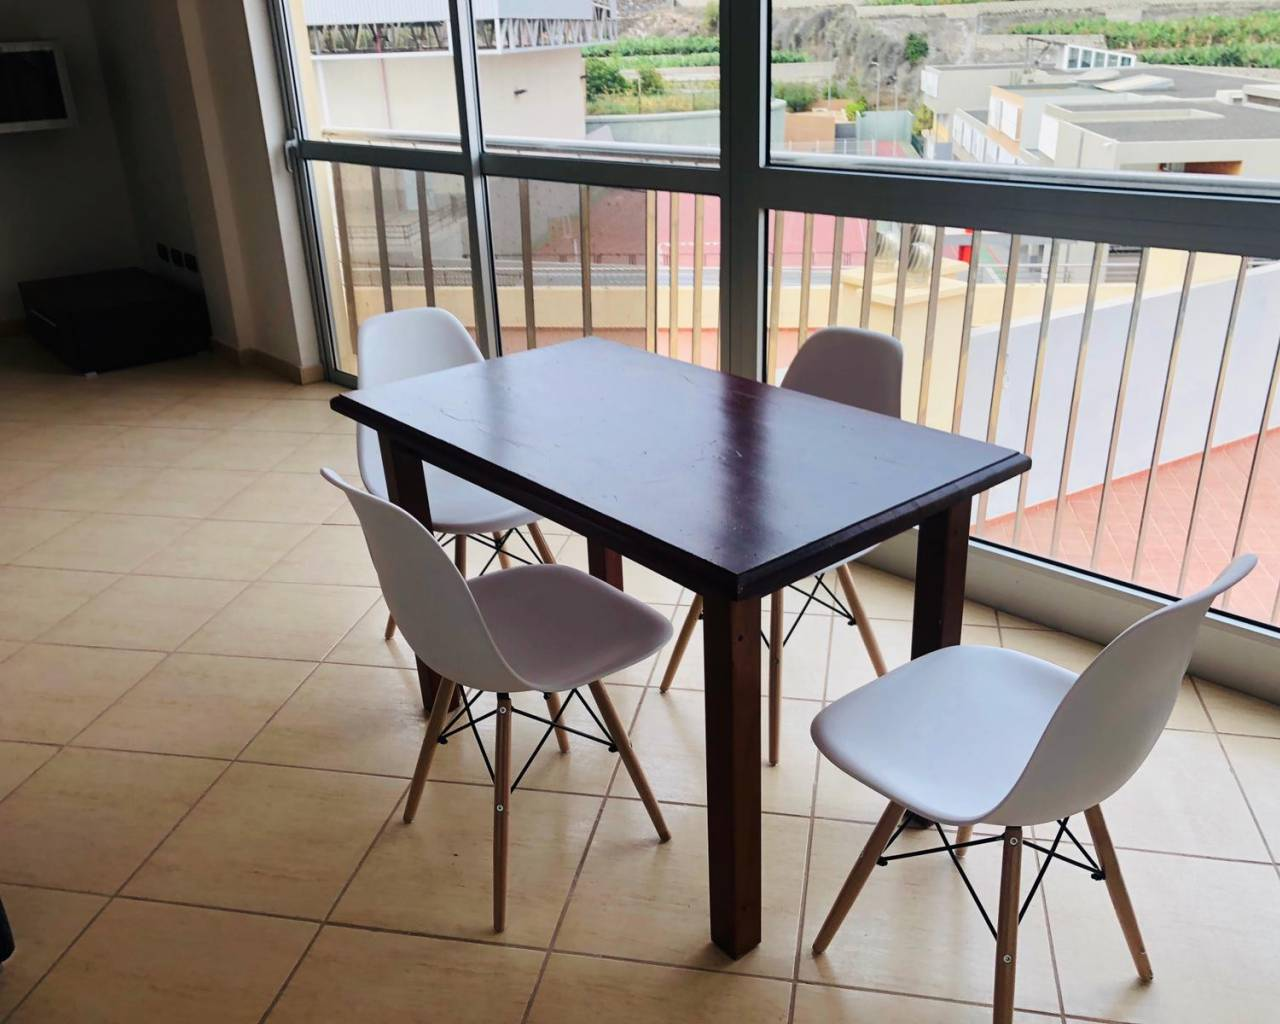 Apartment - Sale - Tenerife - Alcalá